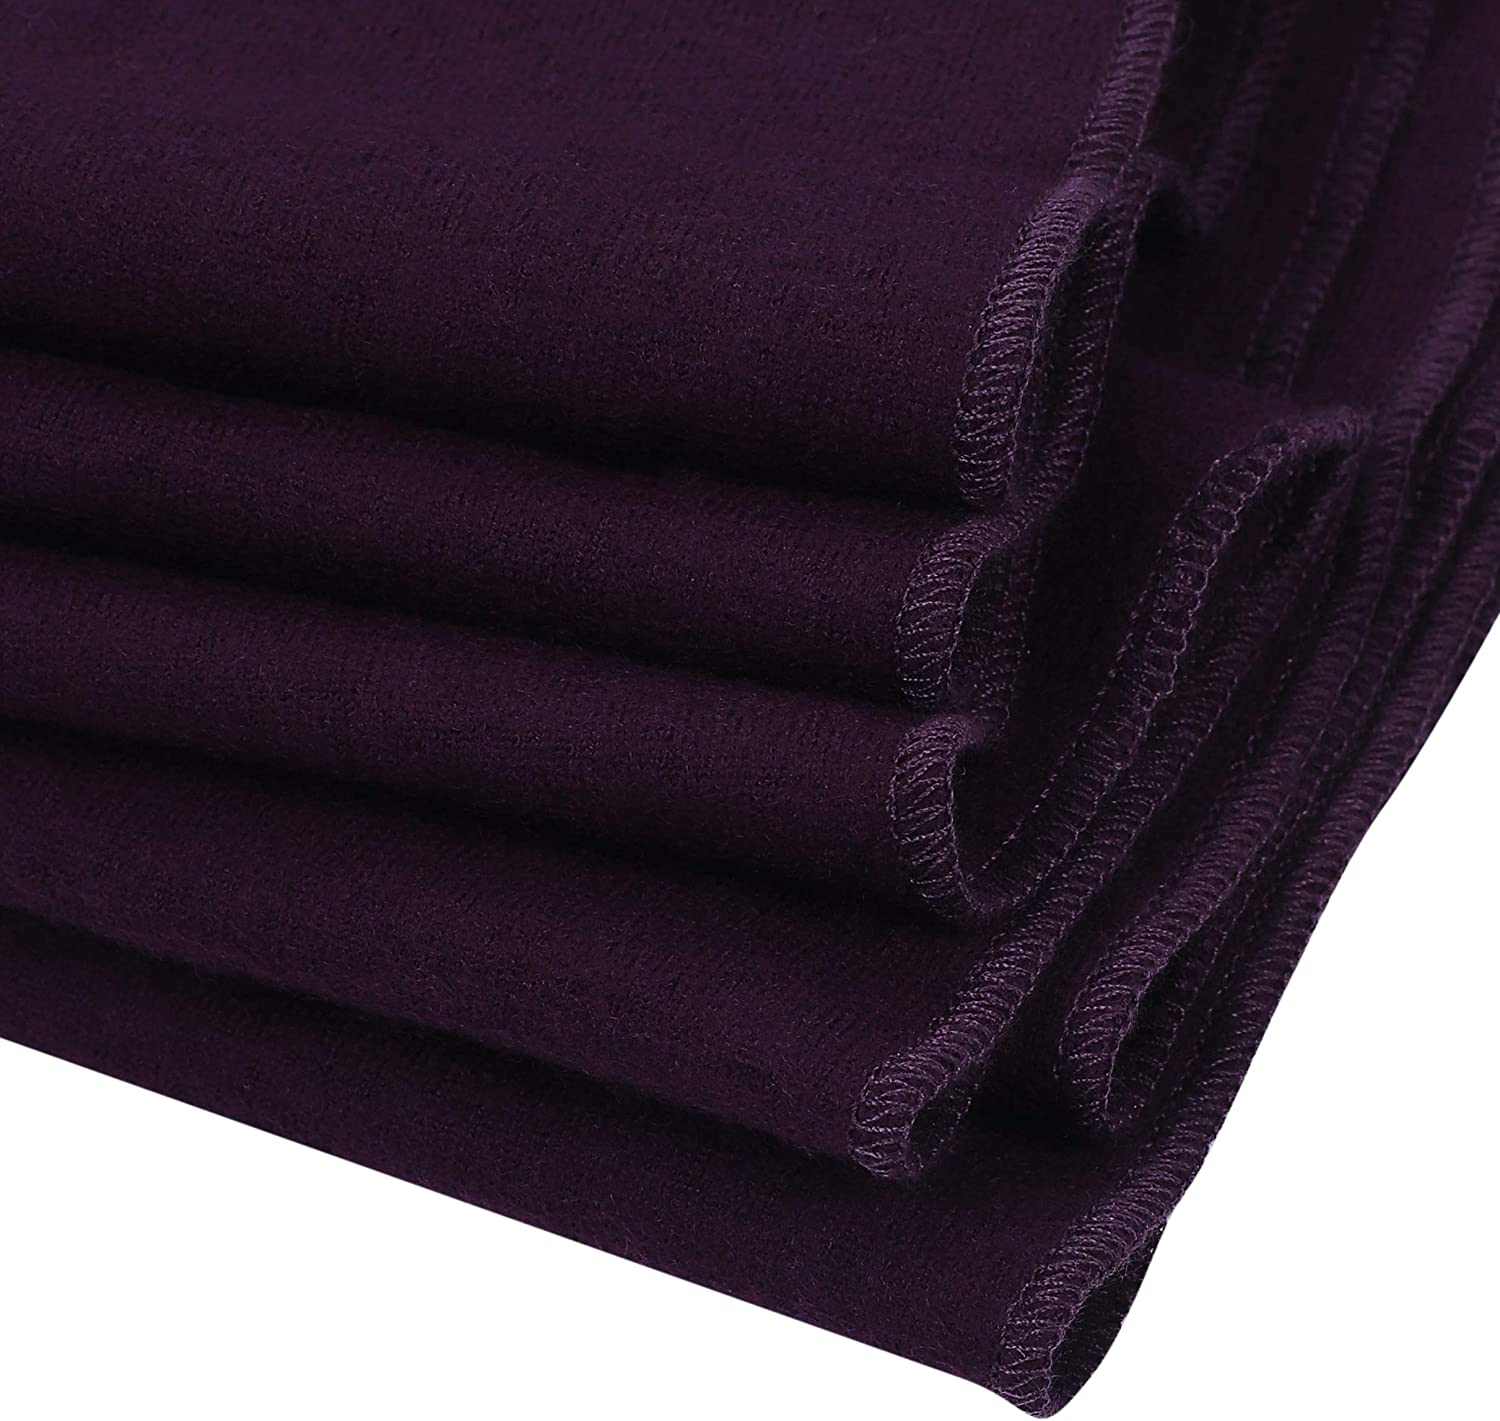 PuTian 100/% Womens Scarves Large Merino Wool Scarf Pashmina for Women Knitted Soft Warm Neckwear with Gift Boxes Lavender 78by14